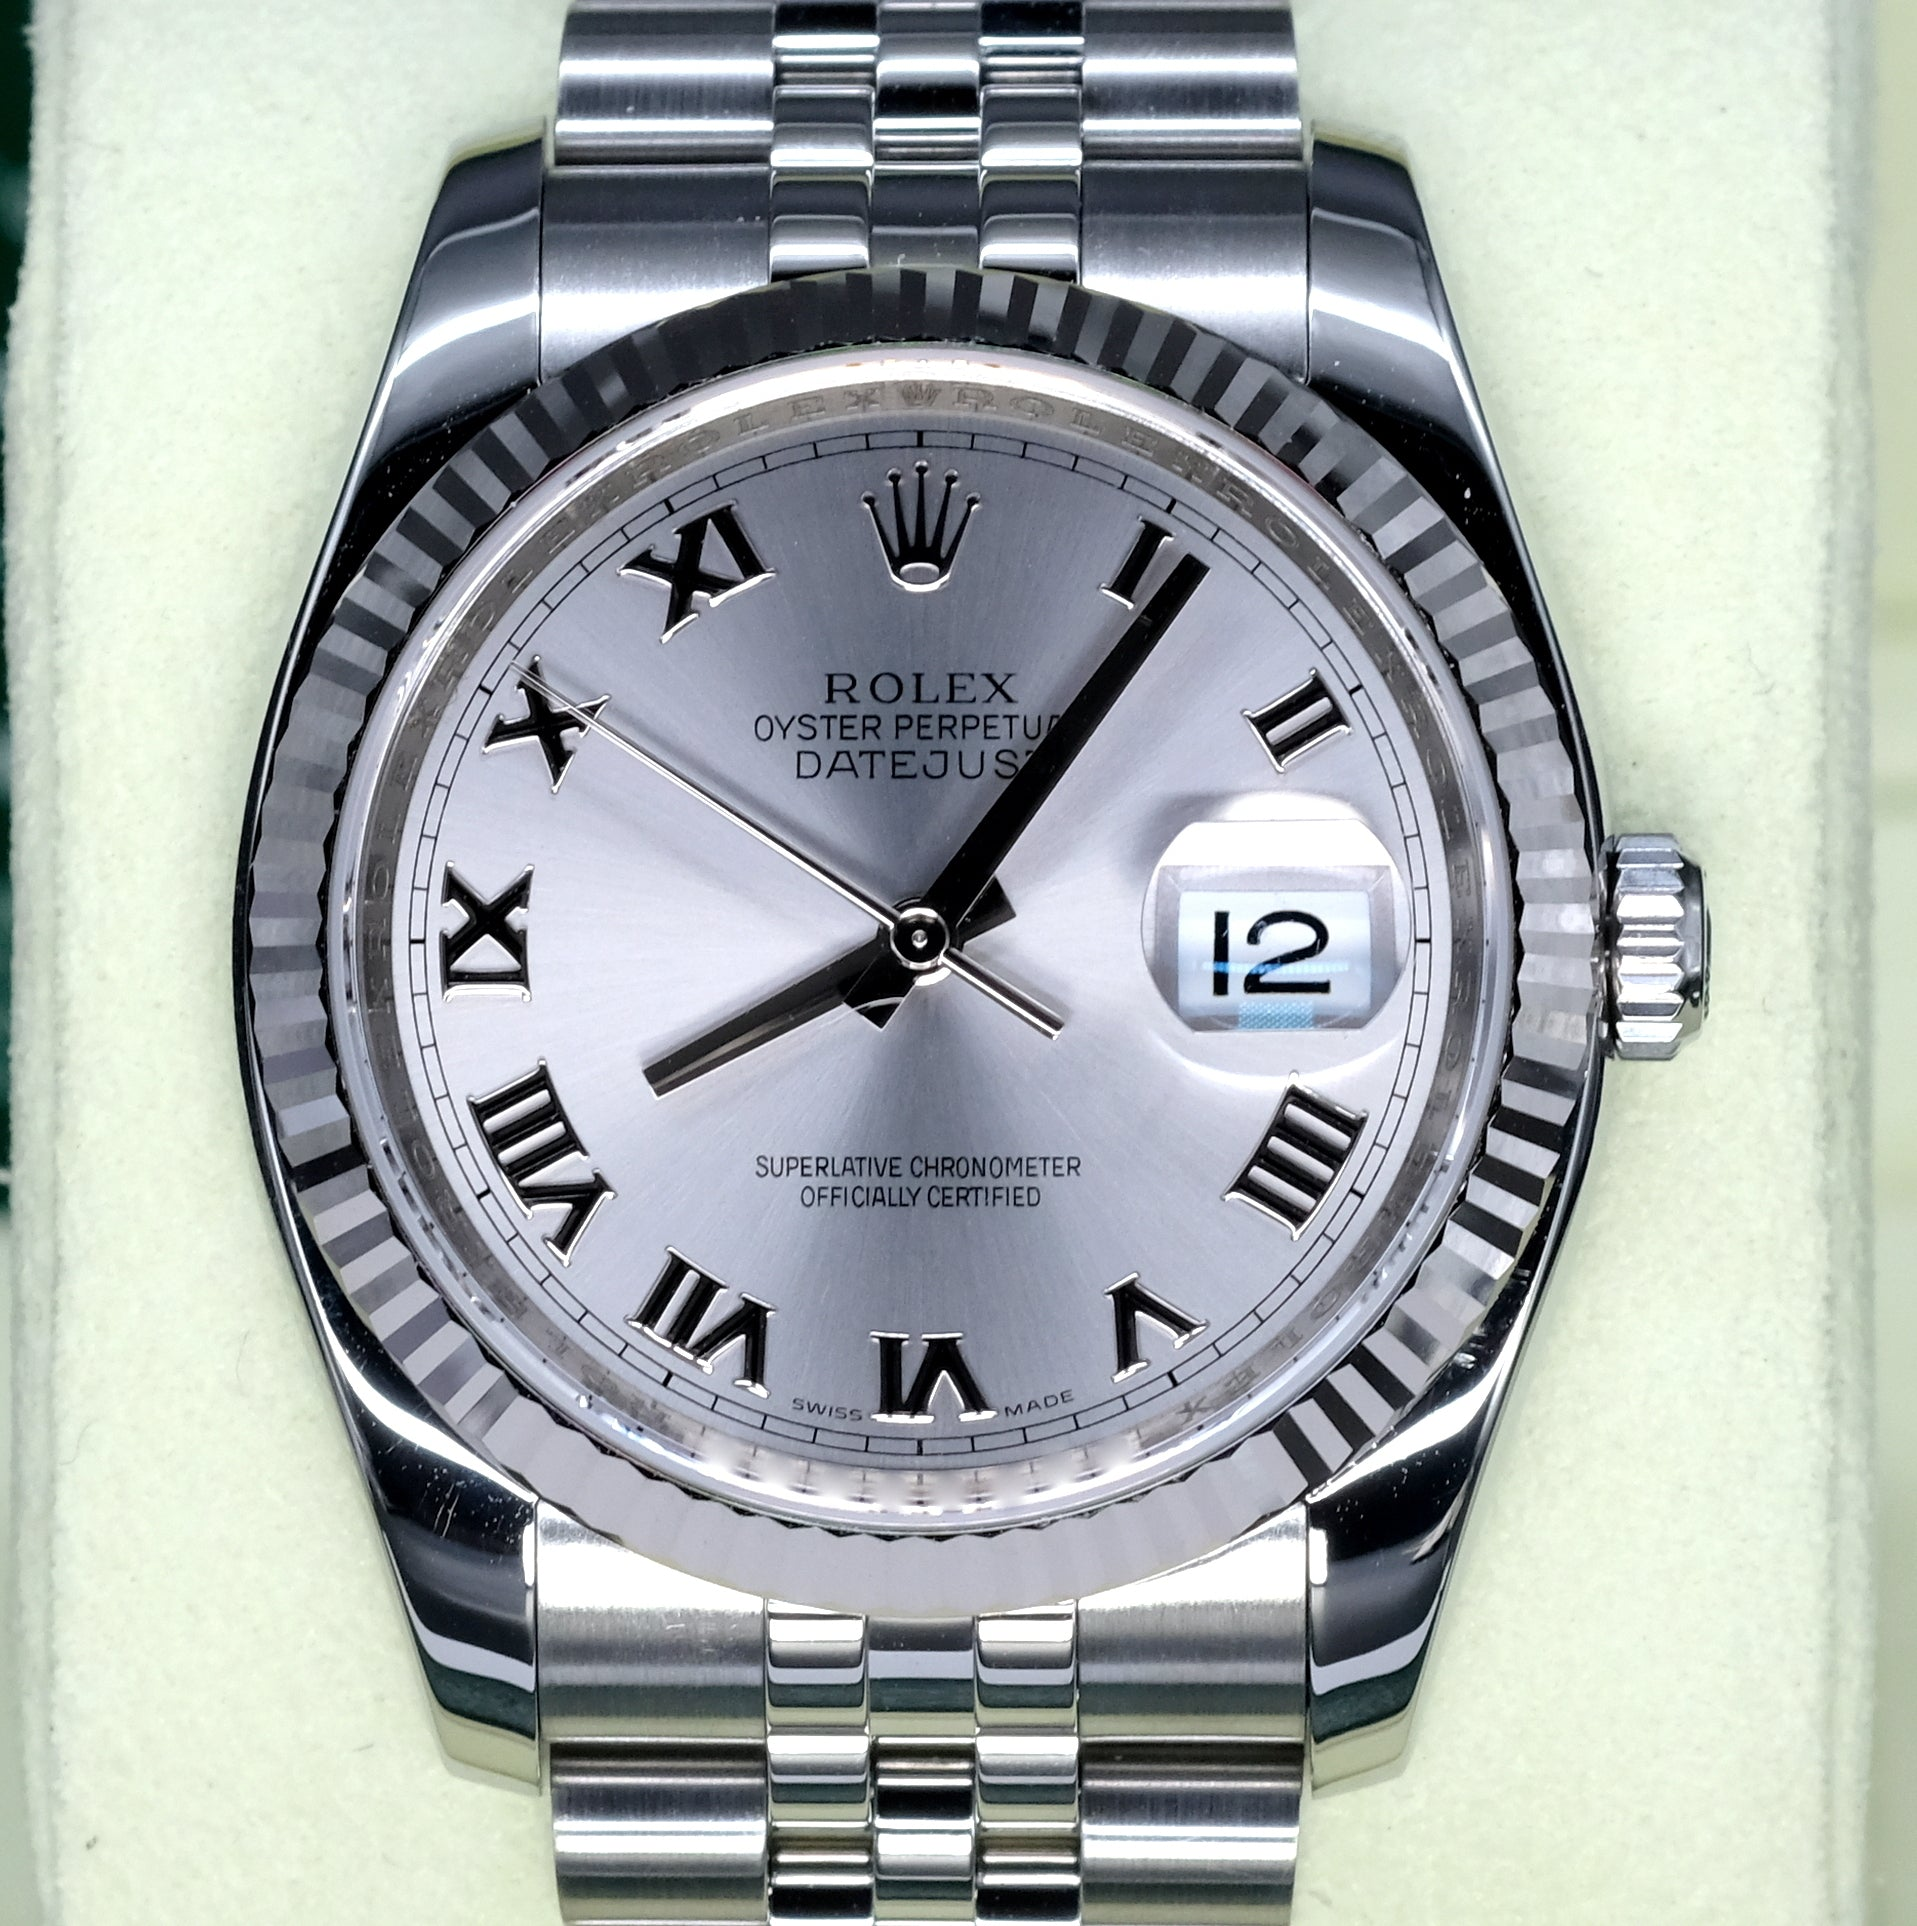 [Pre-Owned Watch] Rolex Datejust 36mm 116234 Rhodium Roman Dial (Jubilee Bracelet) (888)